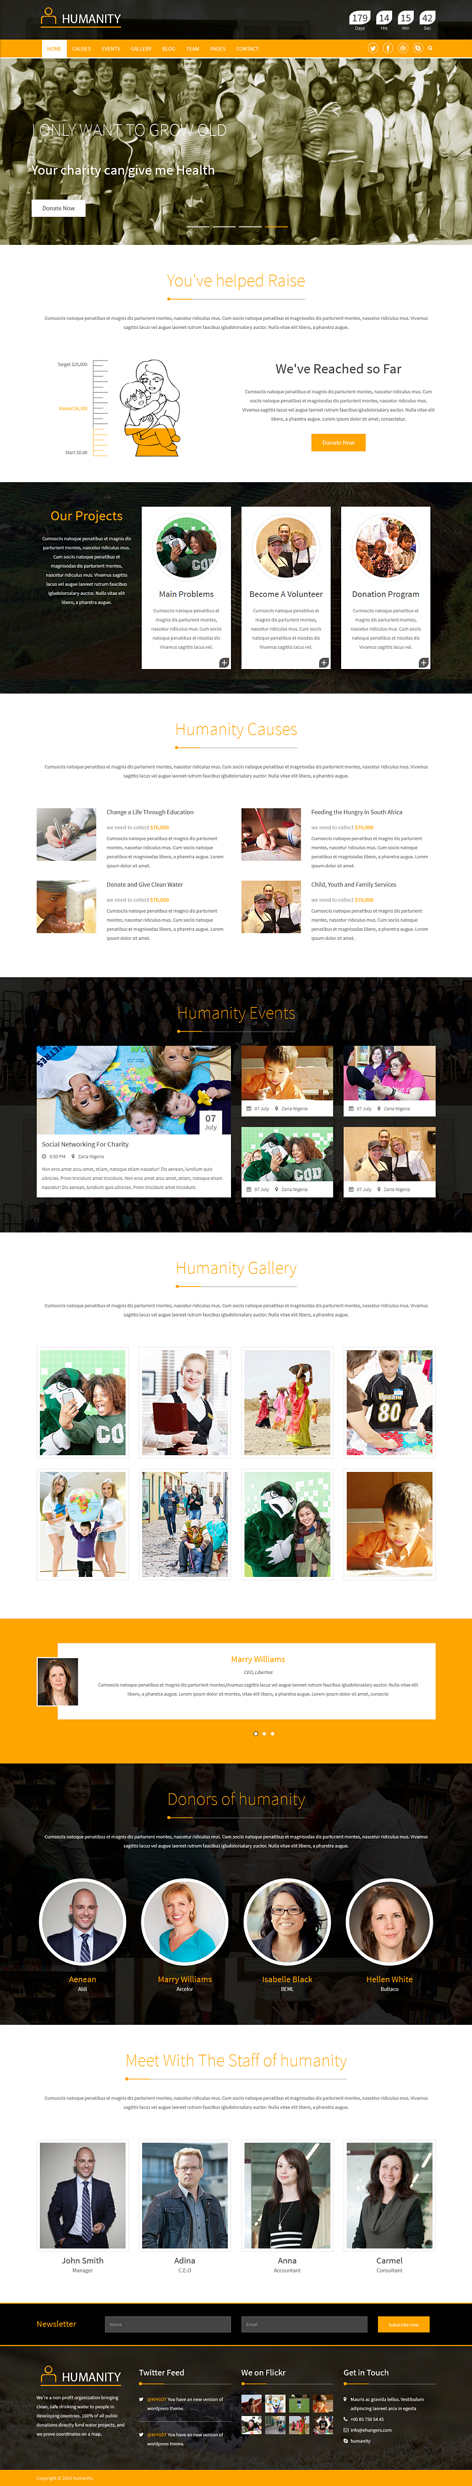 Humanity is a responsive HTML5 Charity Template compatible with Bootstrap 3.